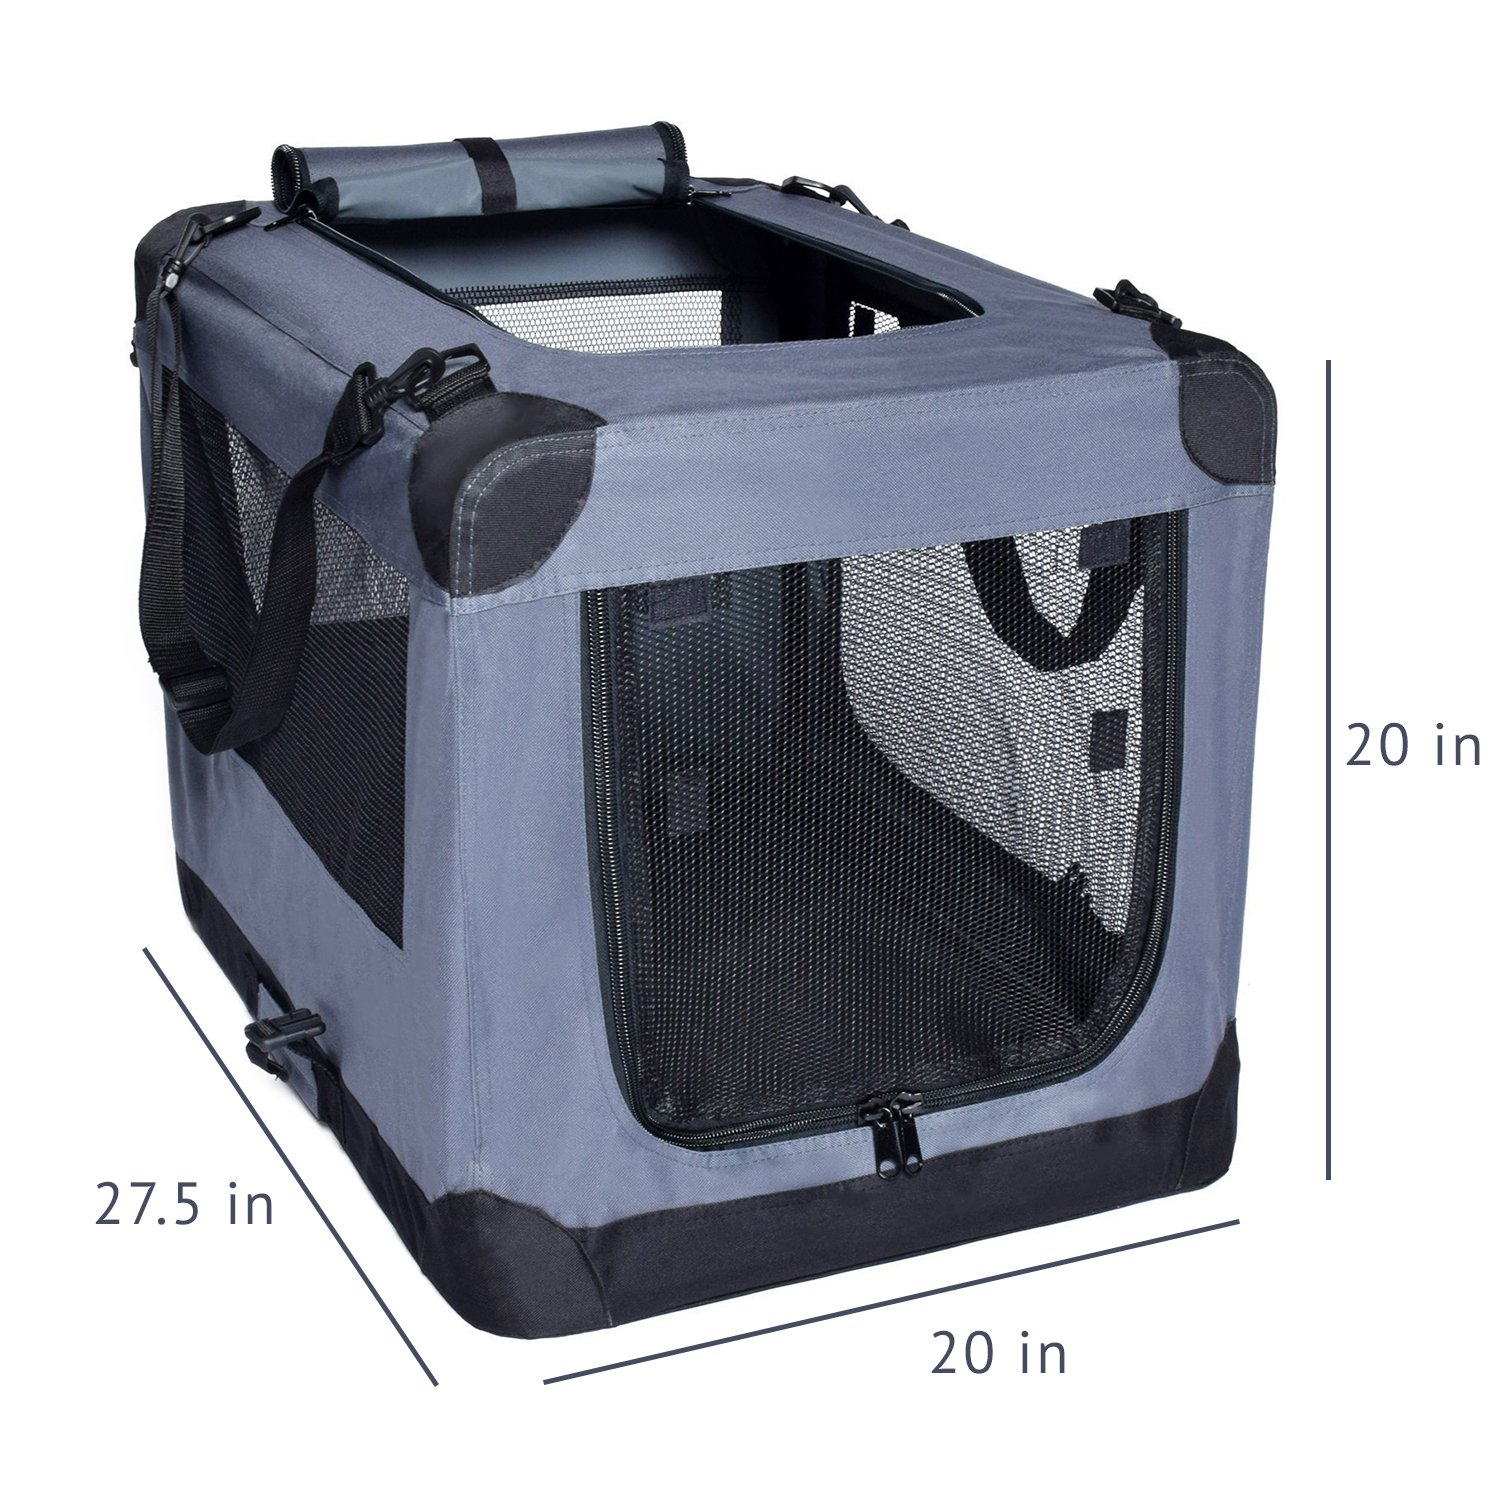 Arf Pets Dog Soft Crate Kennel for Pet Indoor Home Outdoor Use – Soft Sided 3 Door Folding Travel Carrier with Straps